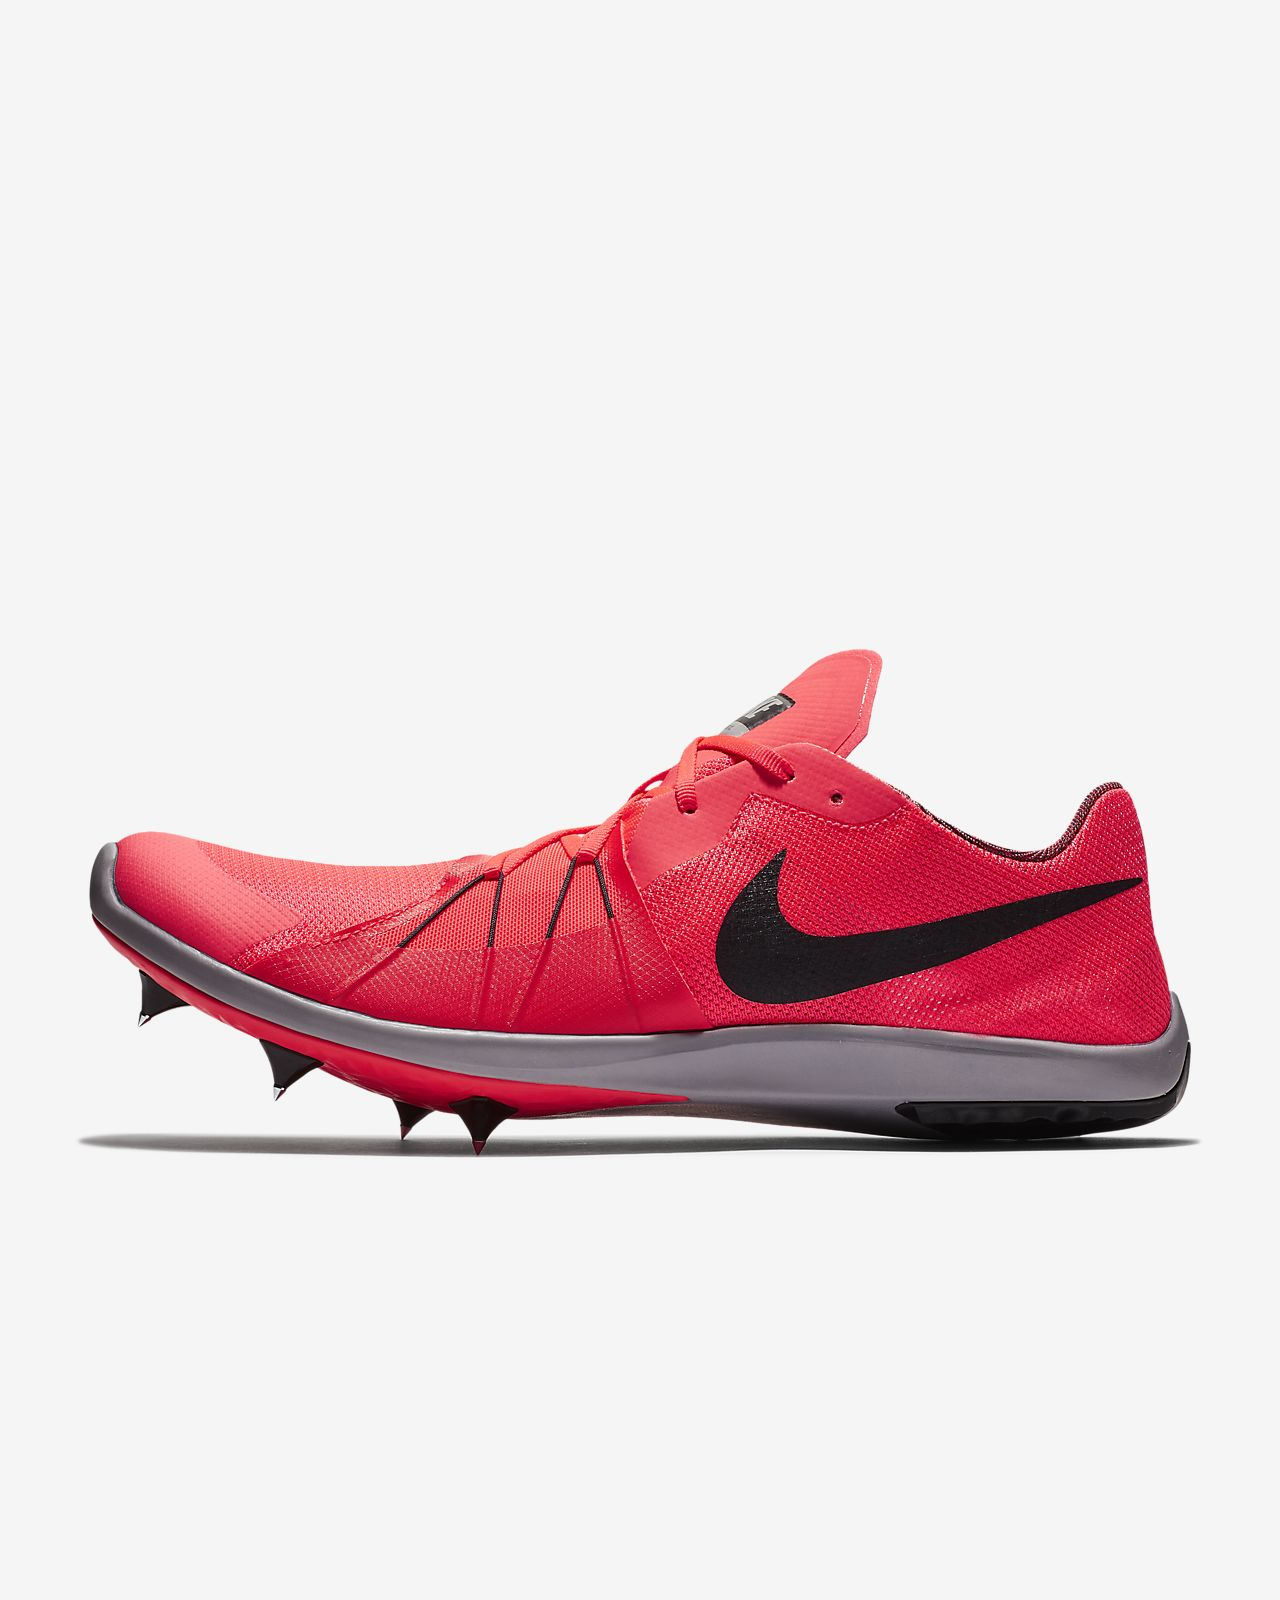 hot sale online 998a6 a7e72 ... Nike Zoom Forever XC 5 Unisex Track Spike